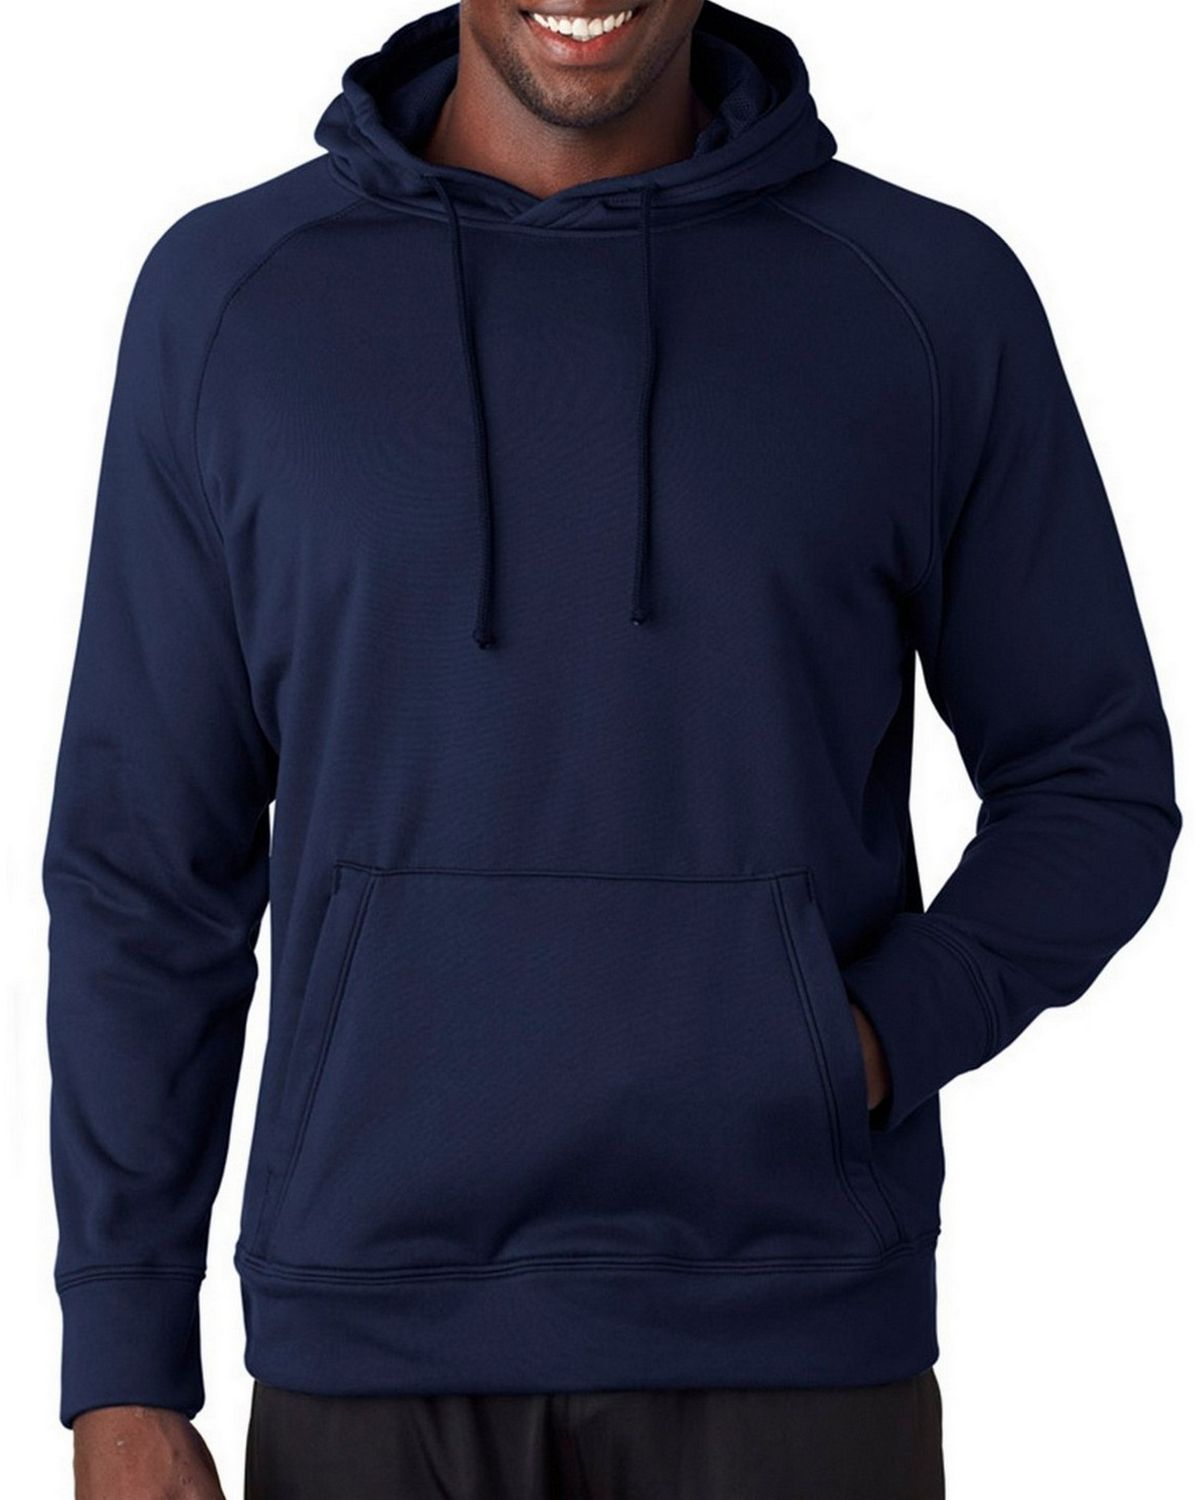 A4 N4237 Adult Solid Tech Fleece Hoodie - Navy - XL N4237